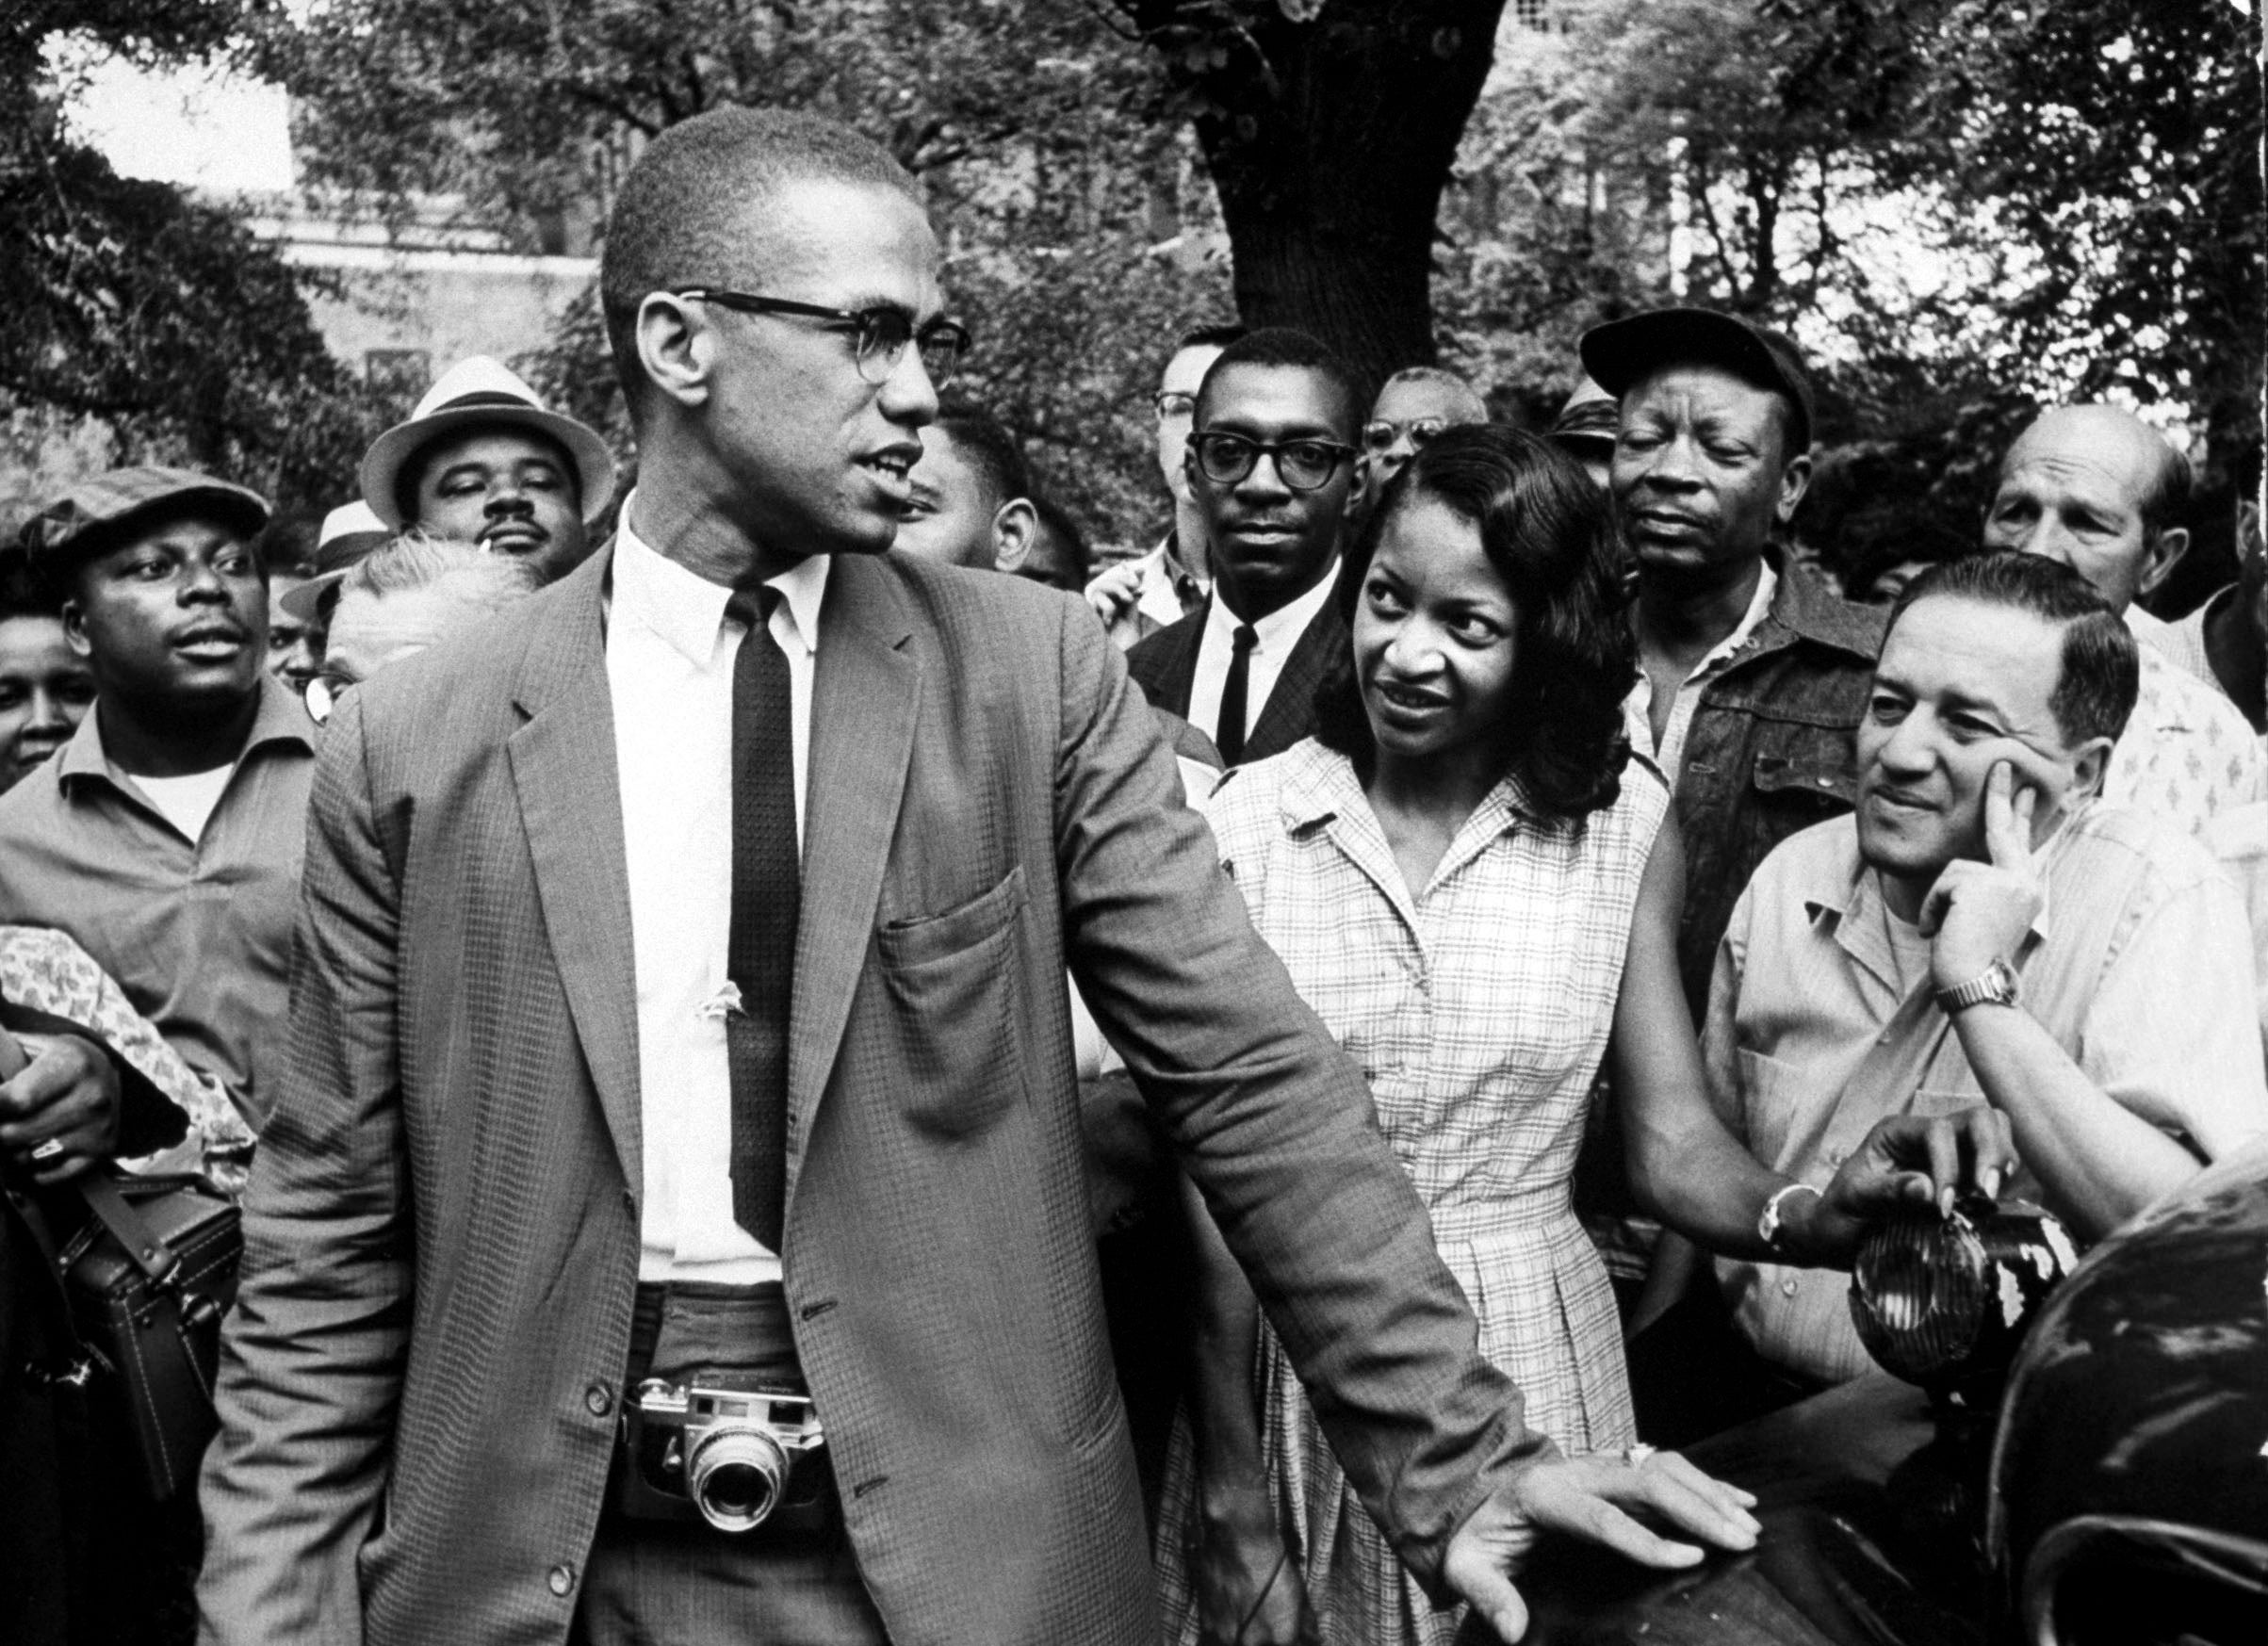 Malcolm X - 55 years later